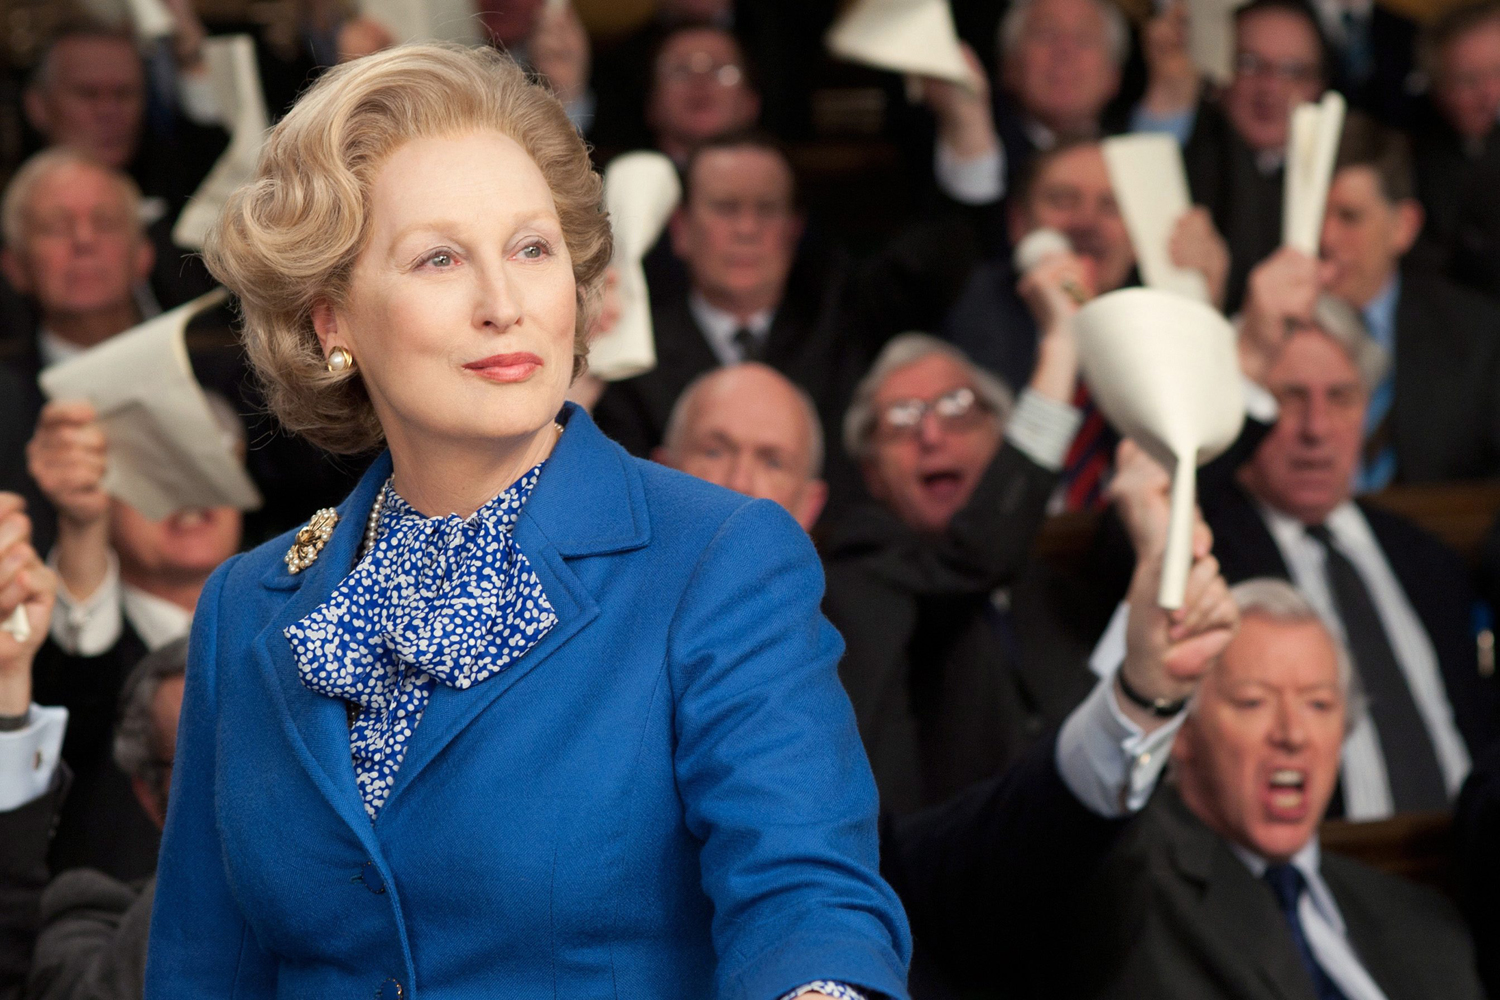 The Iron Lady: Meryl Streep